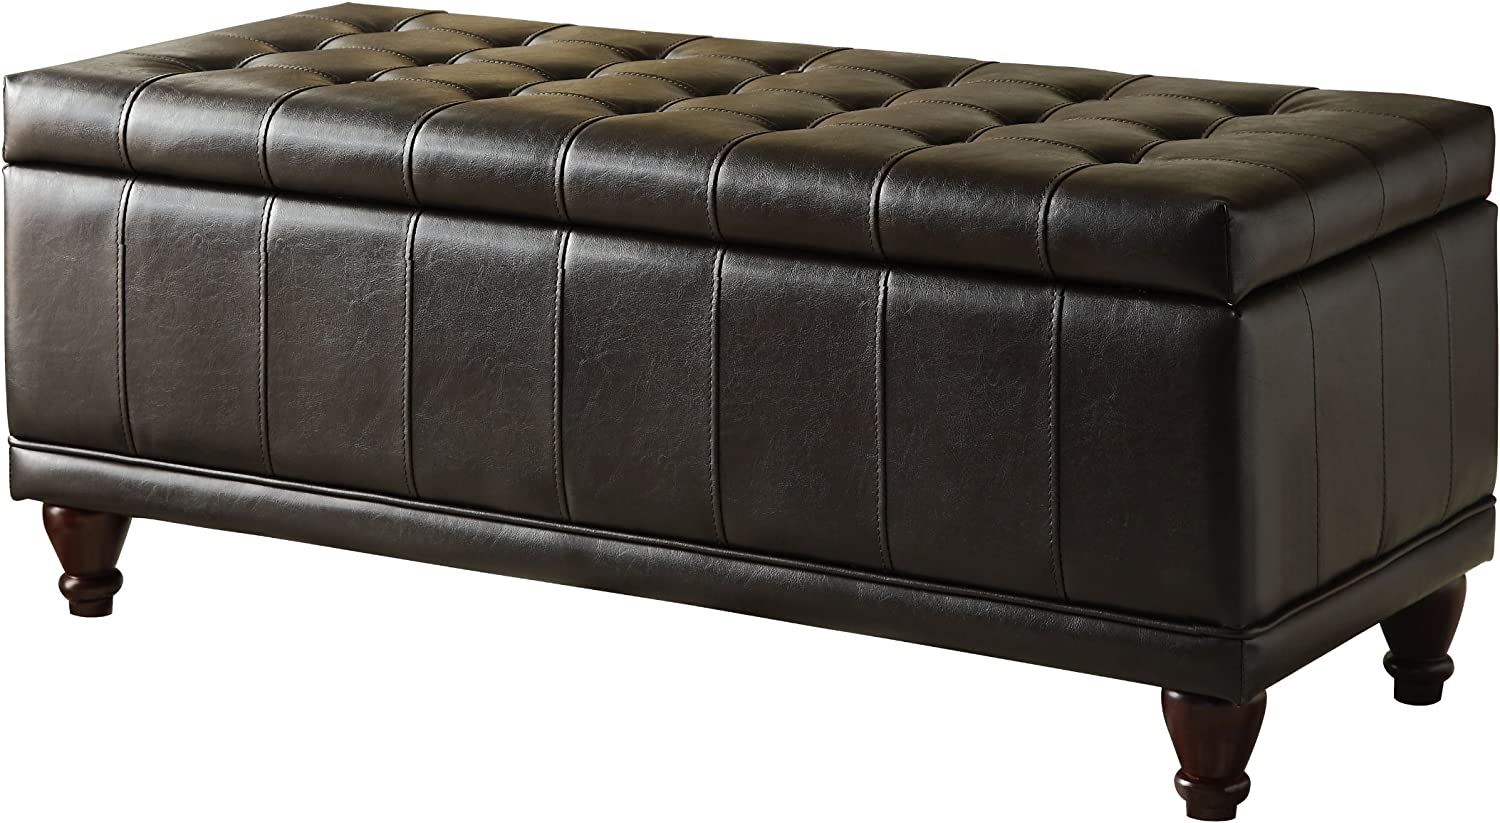 Homelegance Faux Leather Lift Top Storage Bench with Tufted Accents, Dark Brown